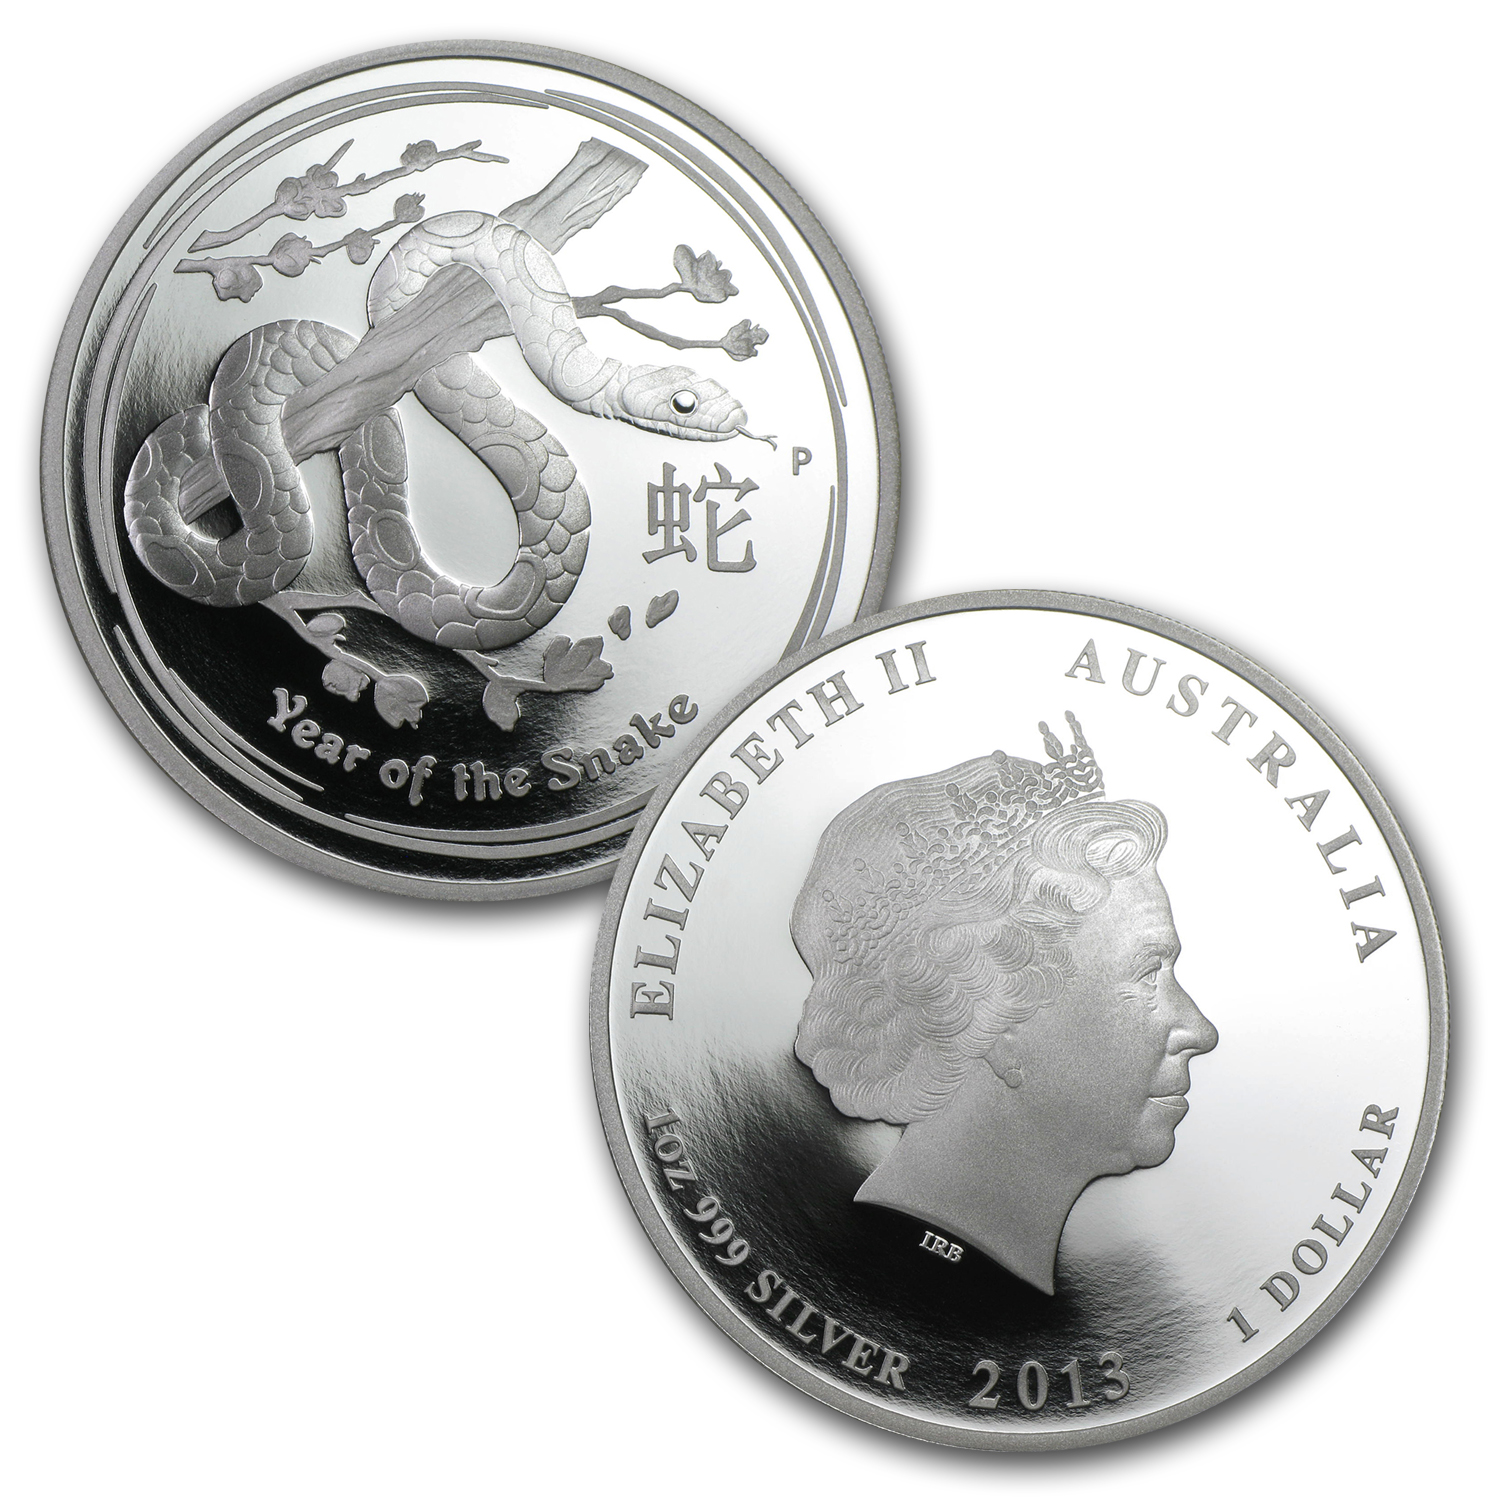 2013 Australia 3-Coin Silver Year of the Snake Proof Set